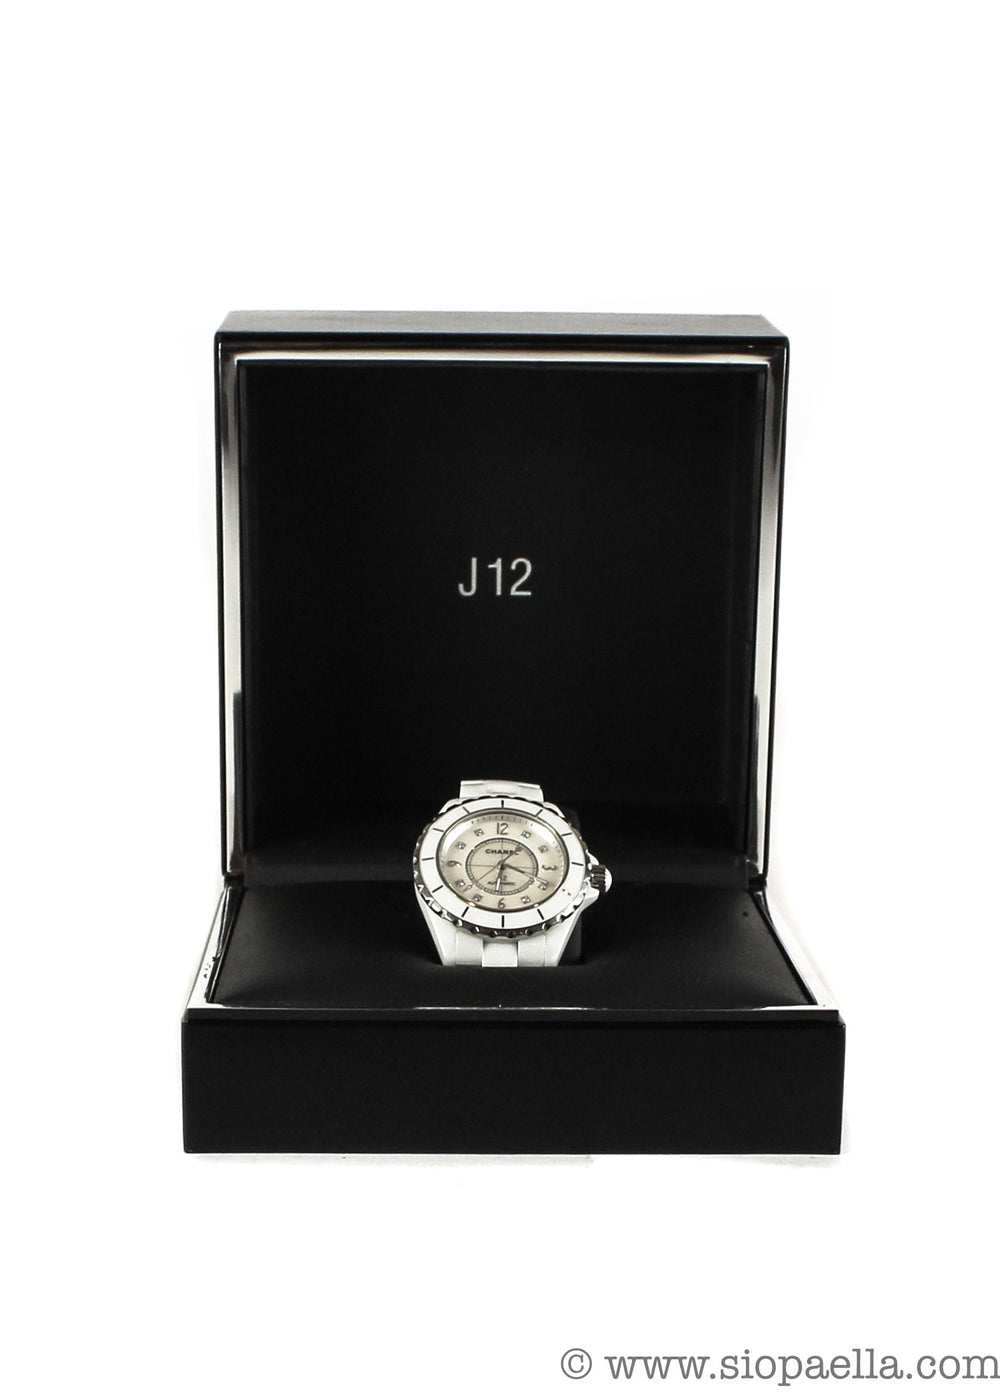 Chanel White Ceramic and Diamond J12 Watch - Siopaella Designer Exchange